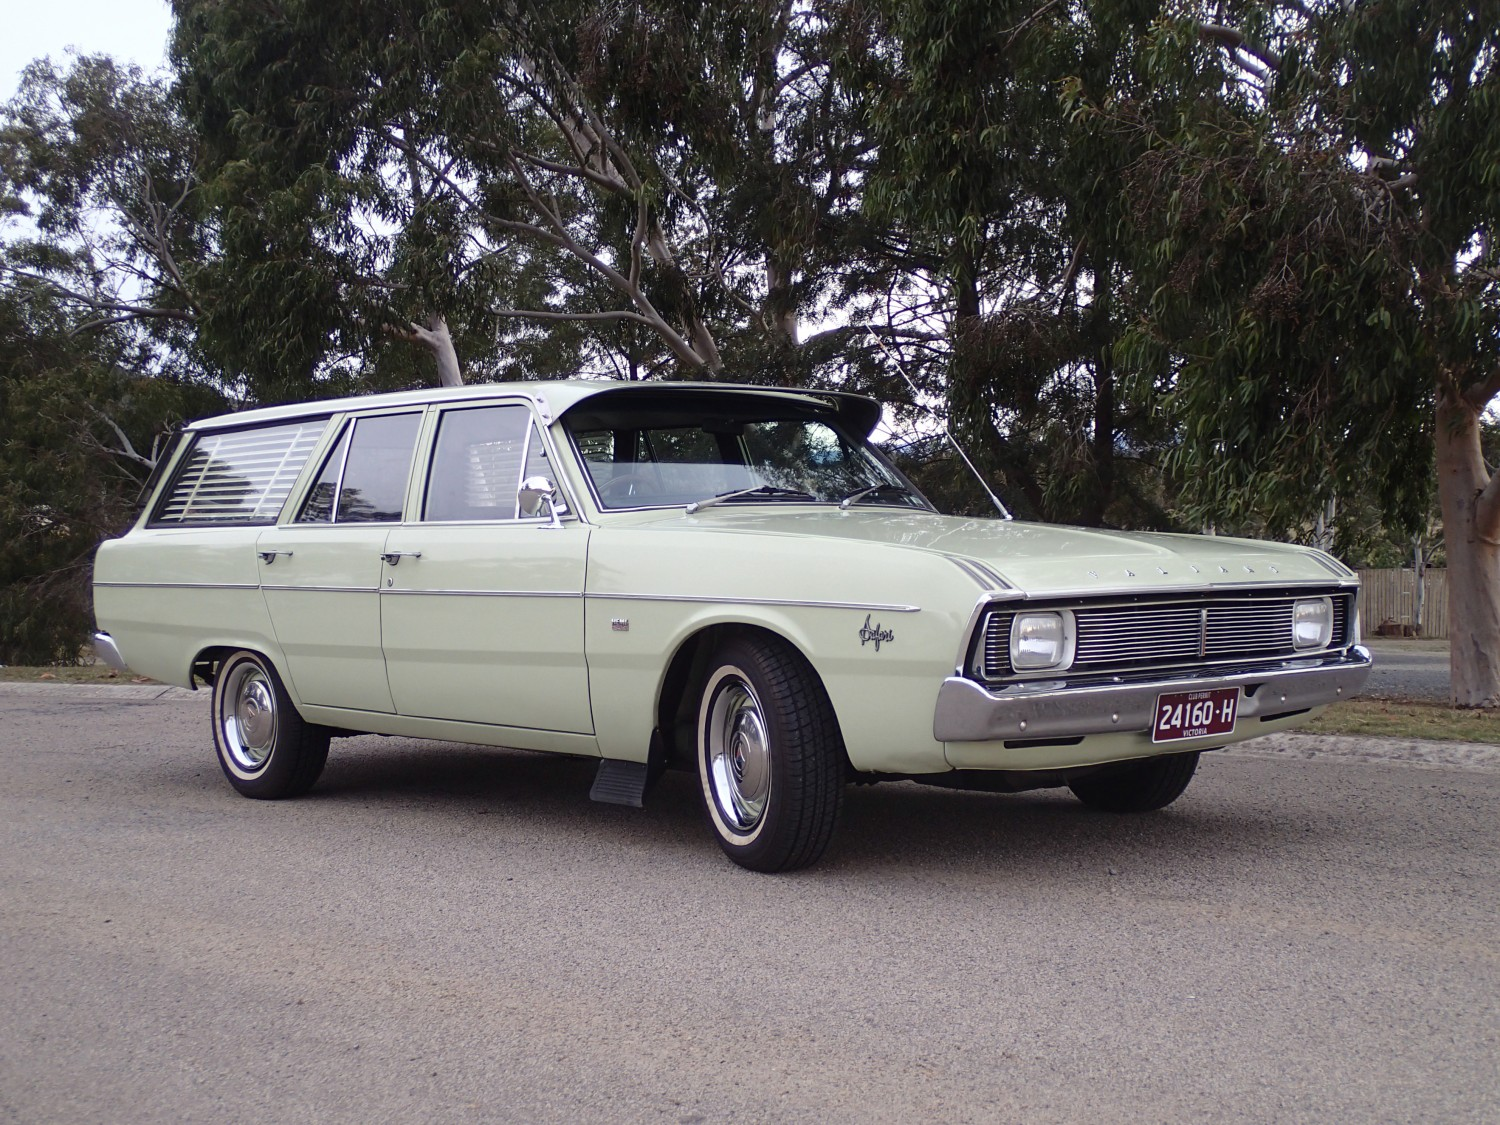 1971 Chrysler VALIANT SAFARI